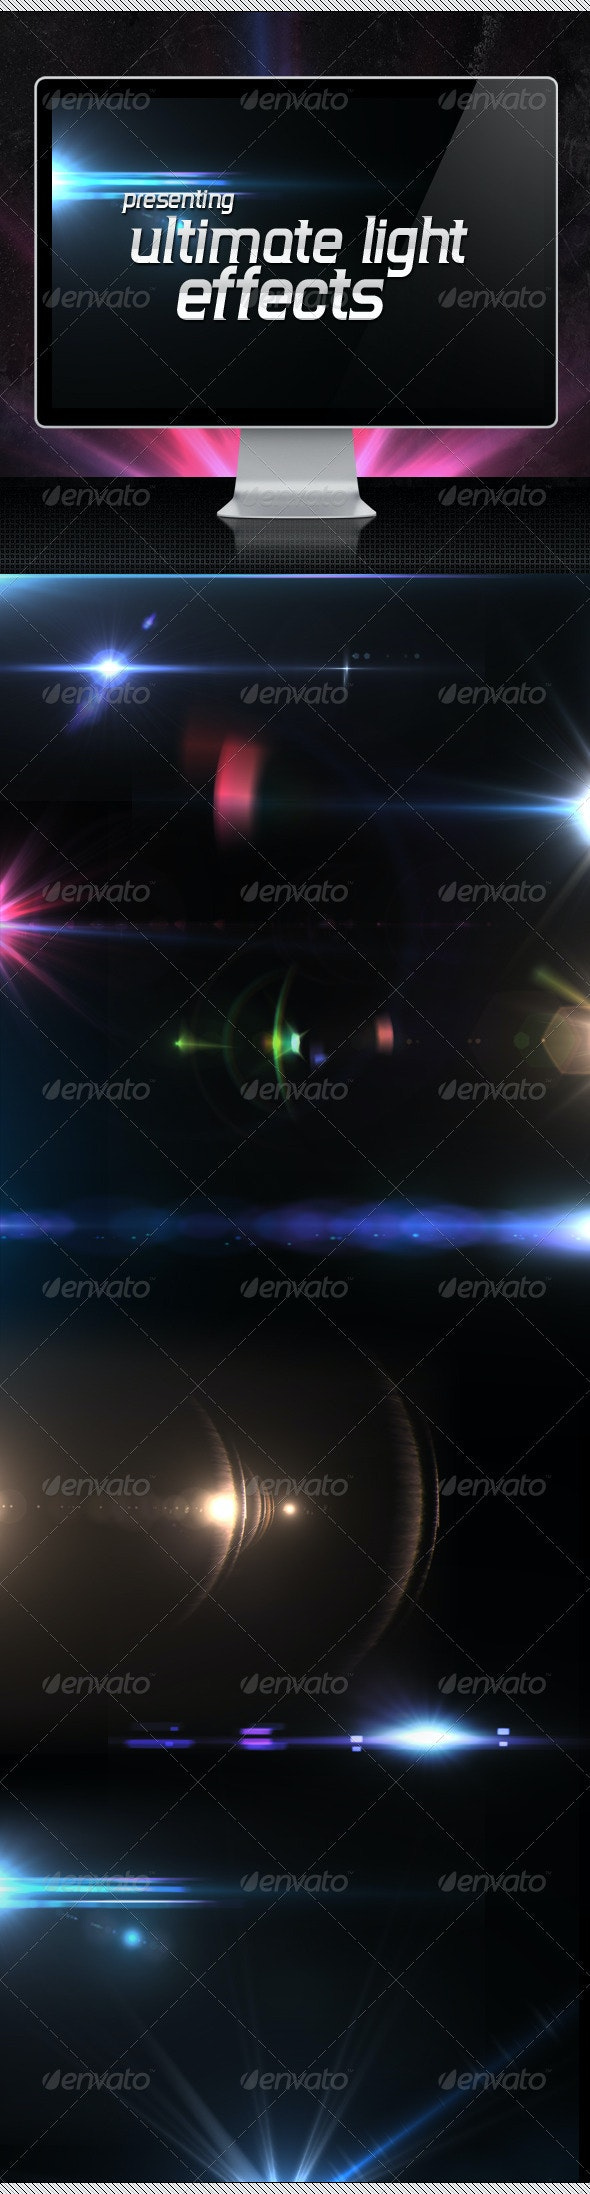 25 Ultimate Light Effects Volume 1 - Decorative Graphics